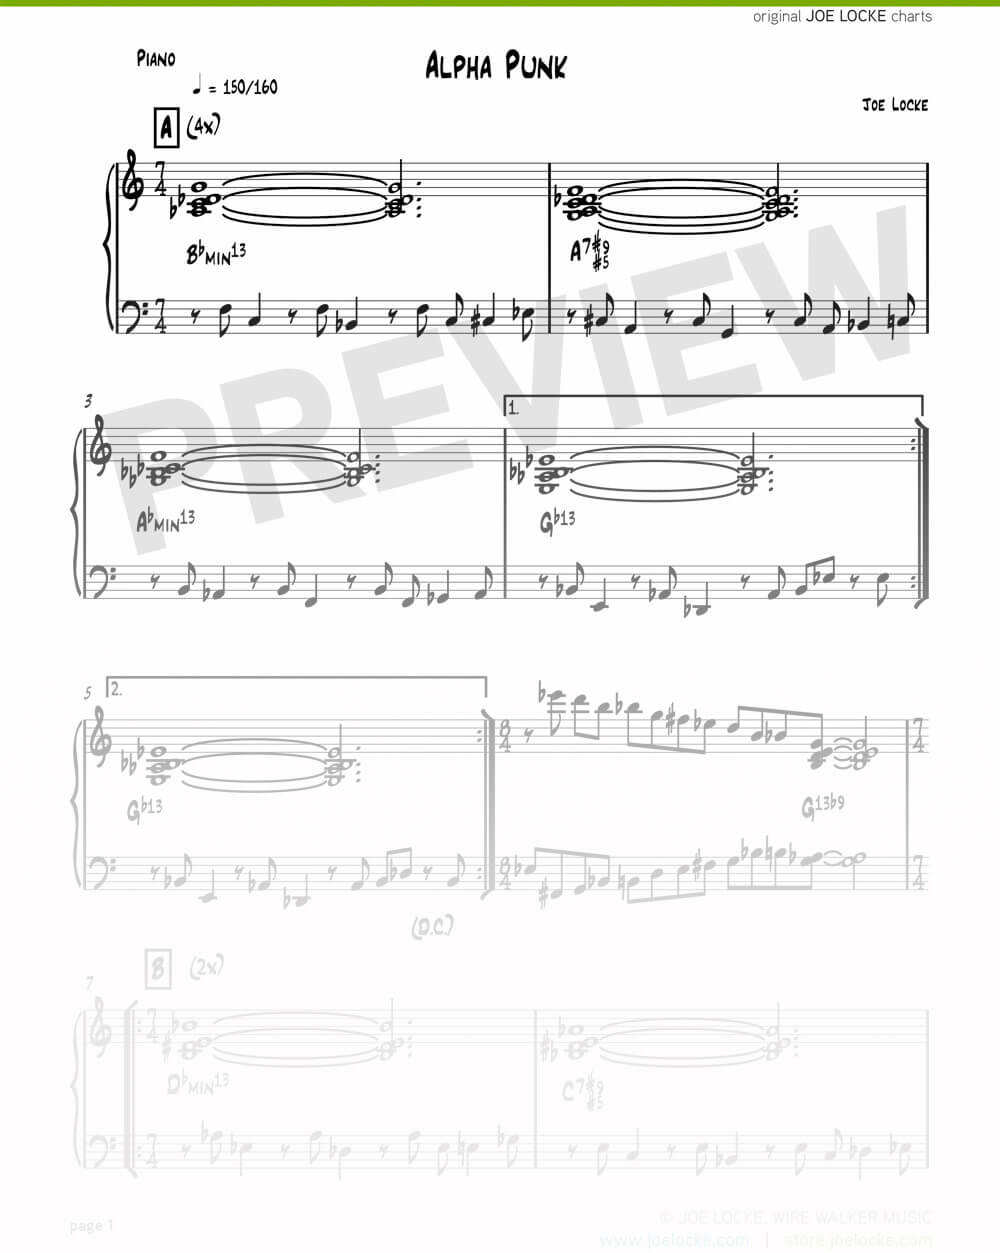 Joe Locke - Alpha Punk sheet music